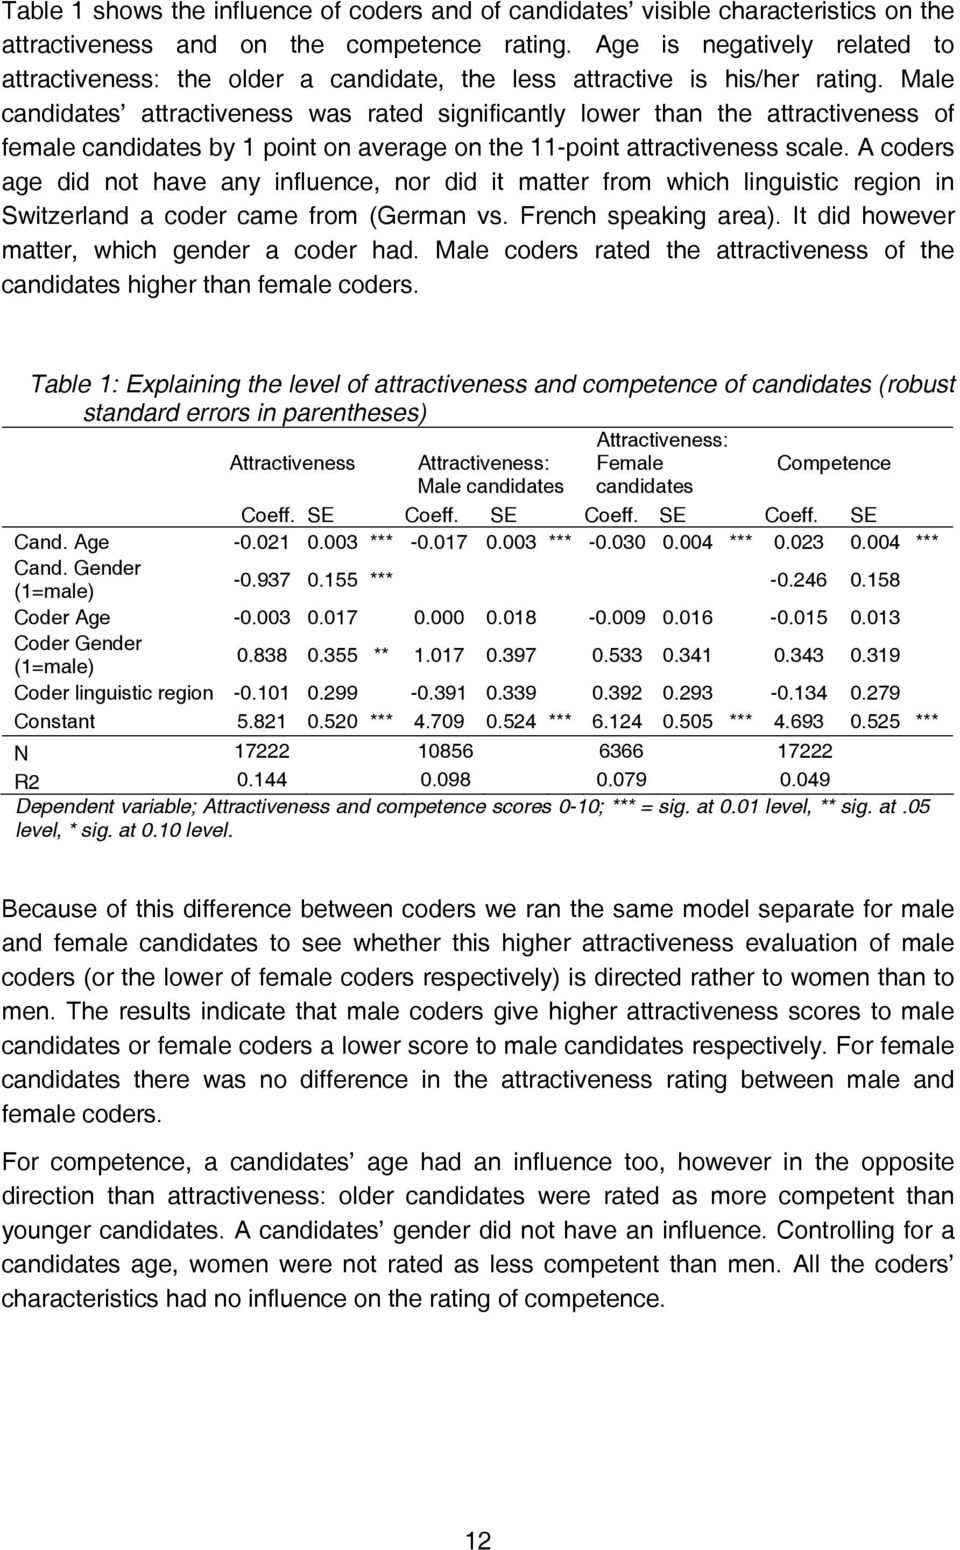 Male candidates attractiveness was rated significantly lower than the attractiveness of female candidates by 1 point on average on the 11-point attractiveness scale.